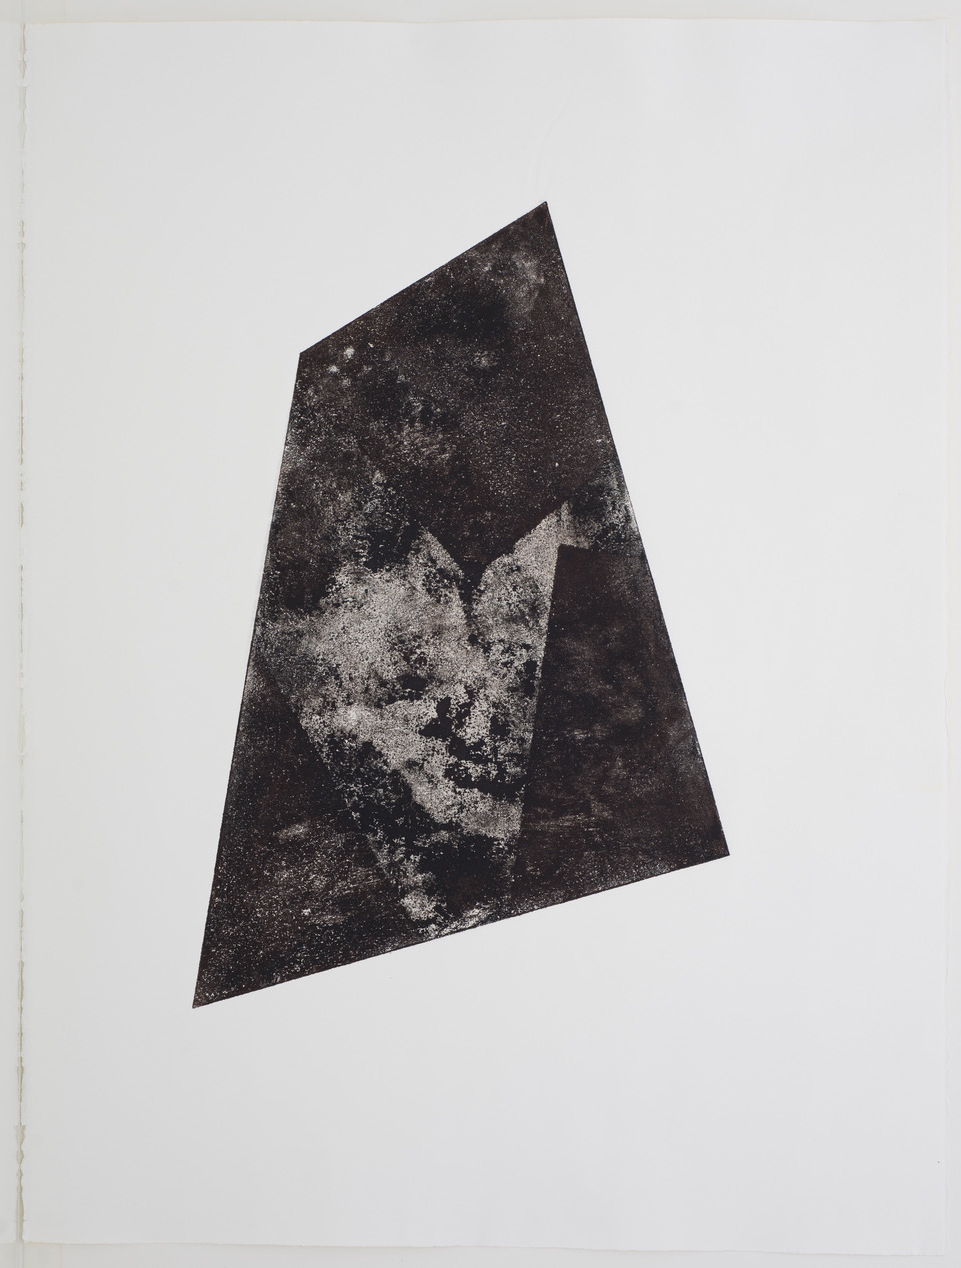 Luisa Duarte, Stone site, 2014. Monotype on paper, 30 x 22 x 0 in.